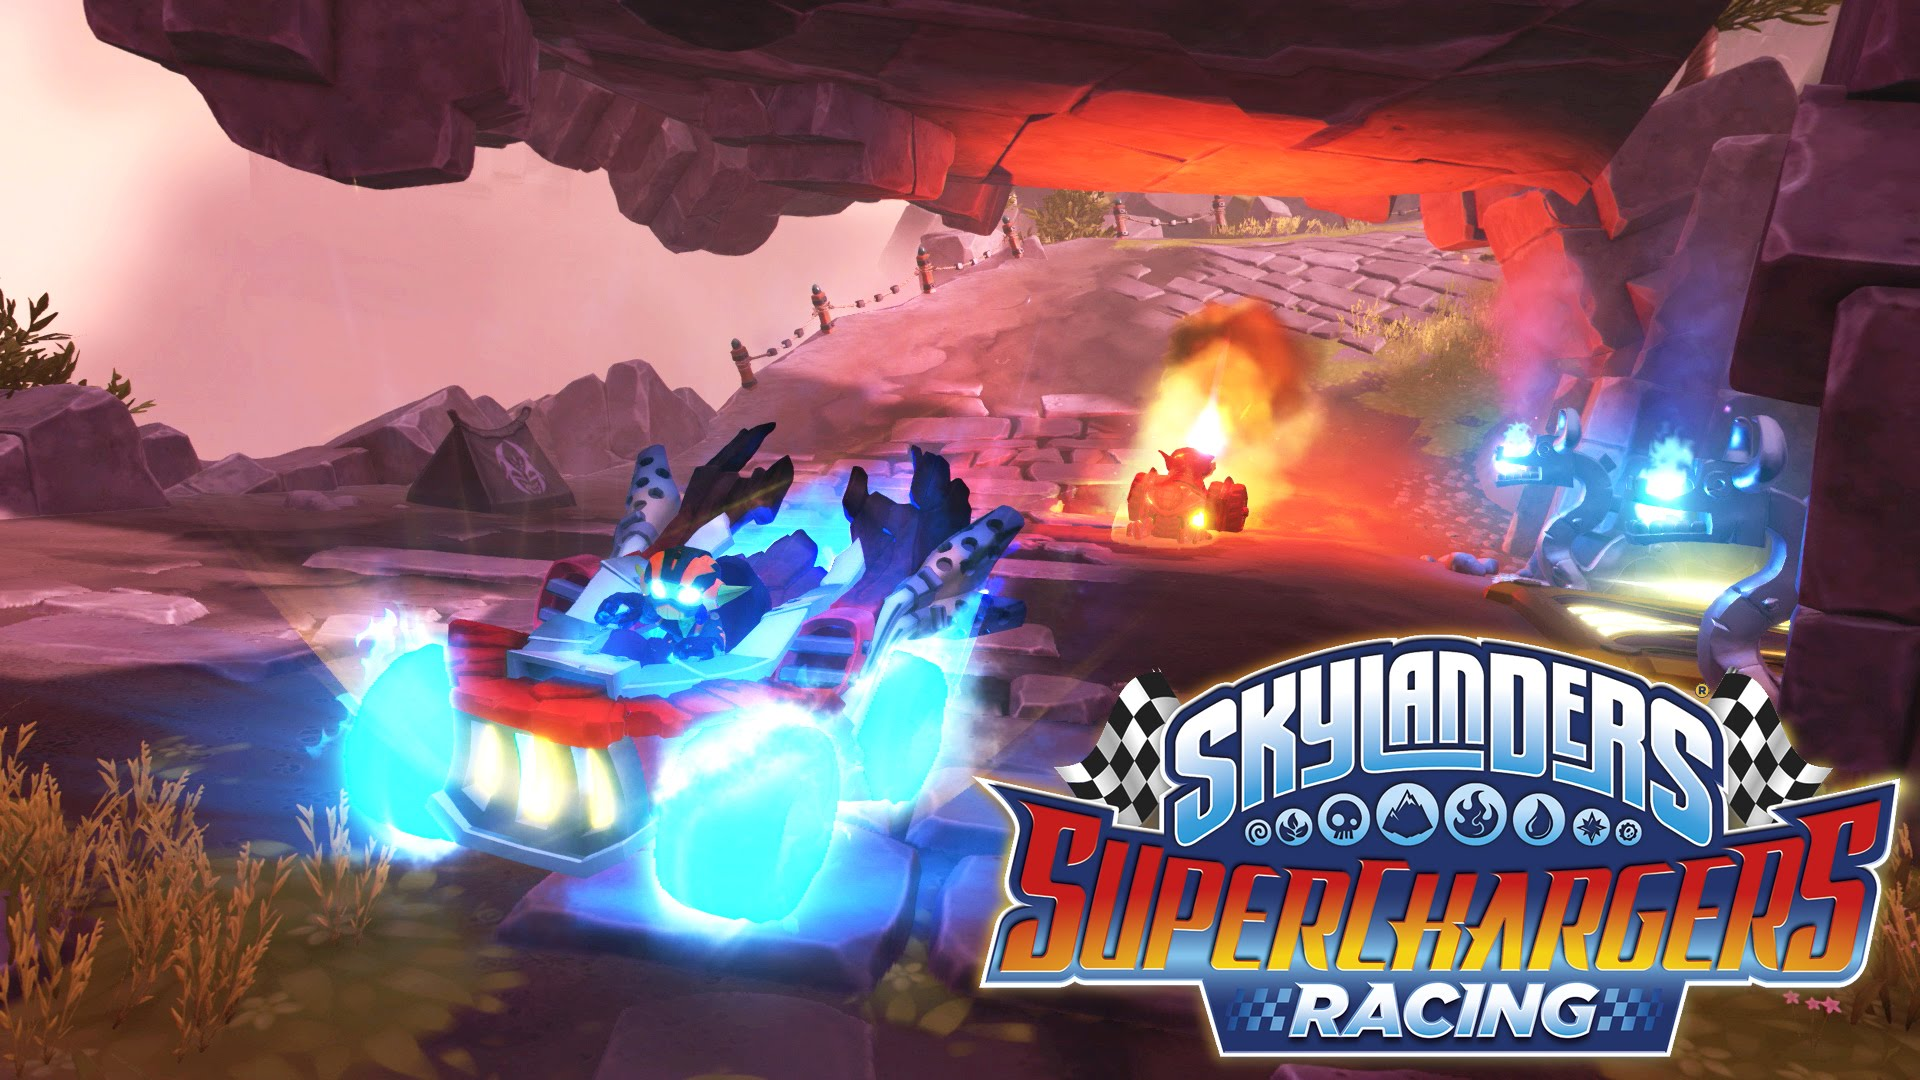 Skylanders SuperChargers Racing – Wii U, Wii & 3DS Game Analysis